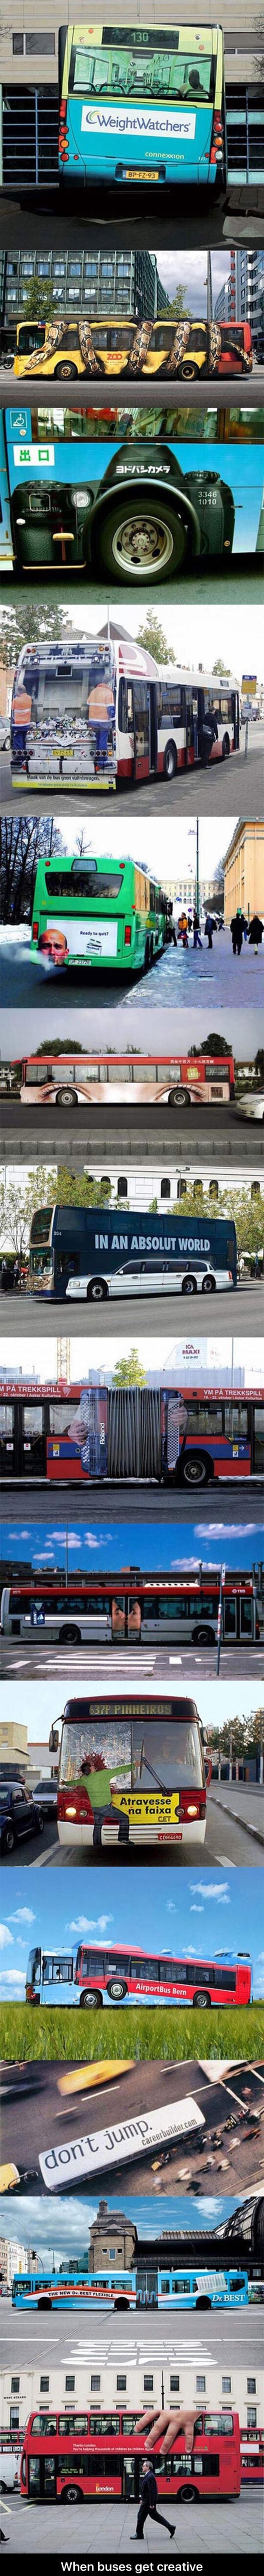 creative bus ads